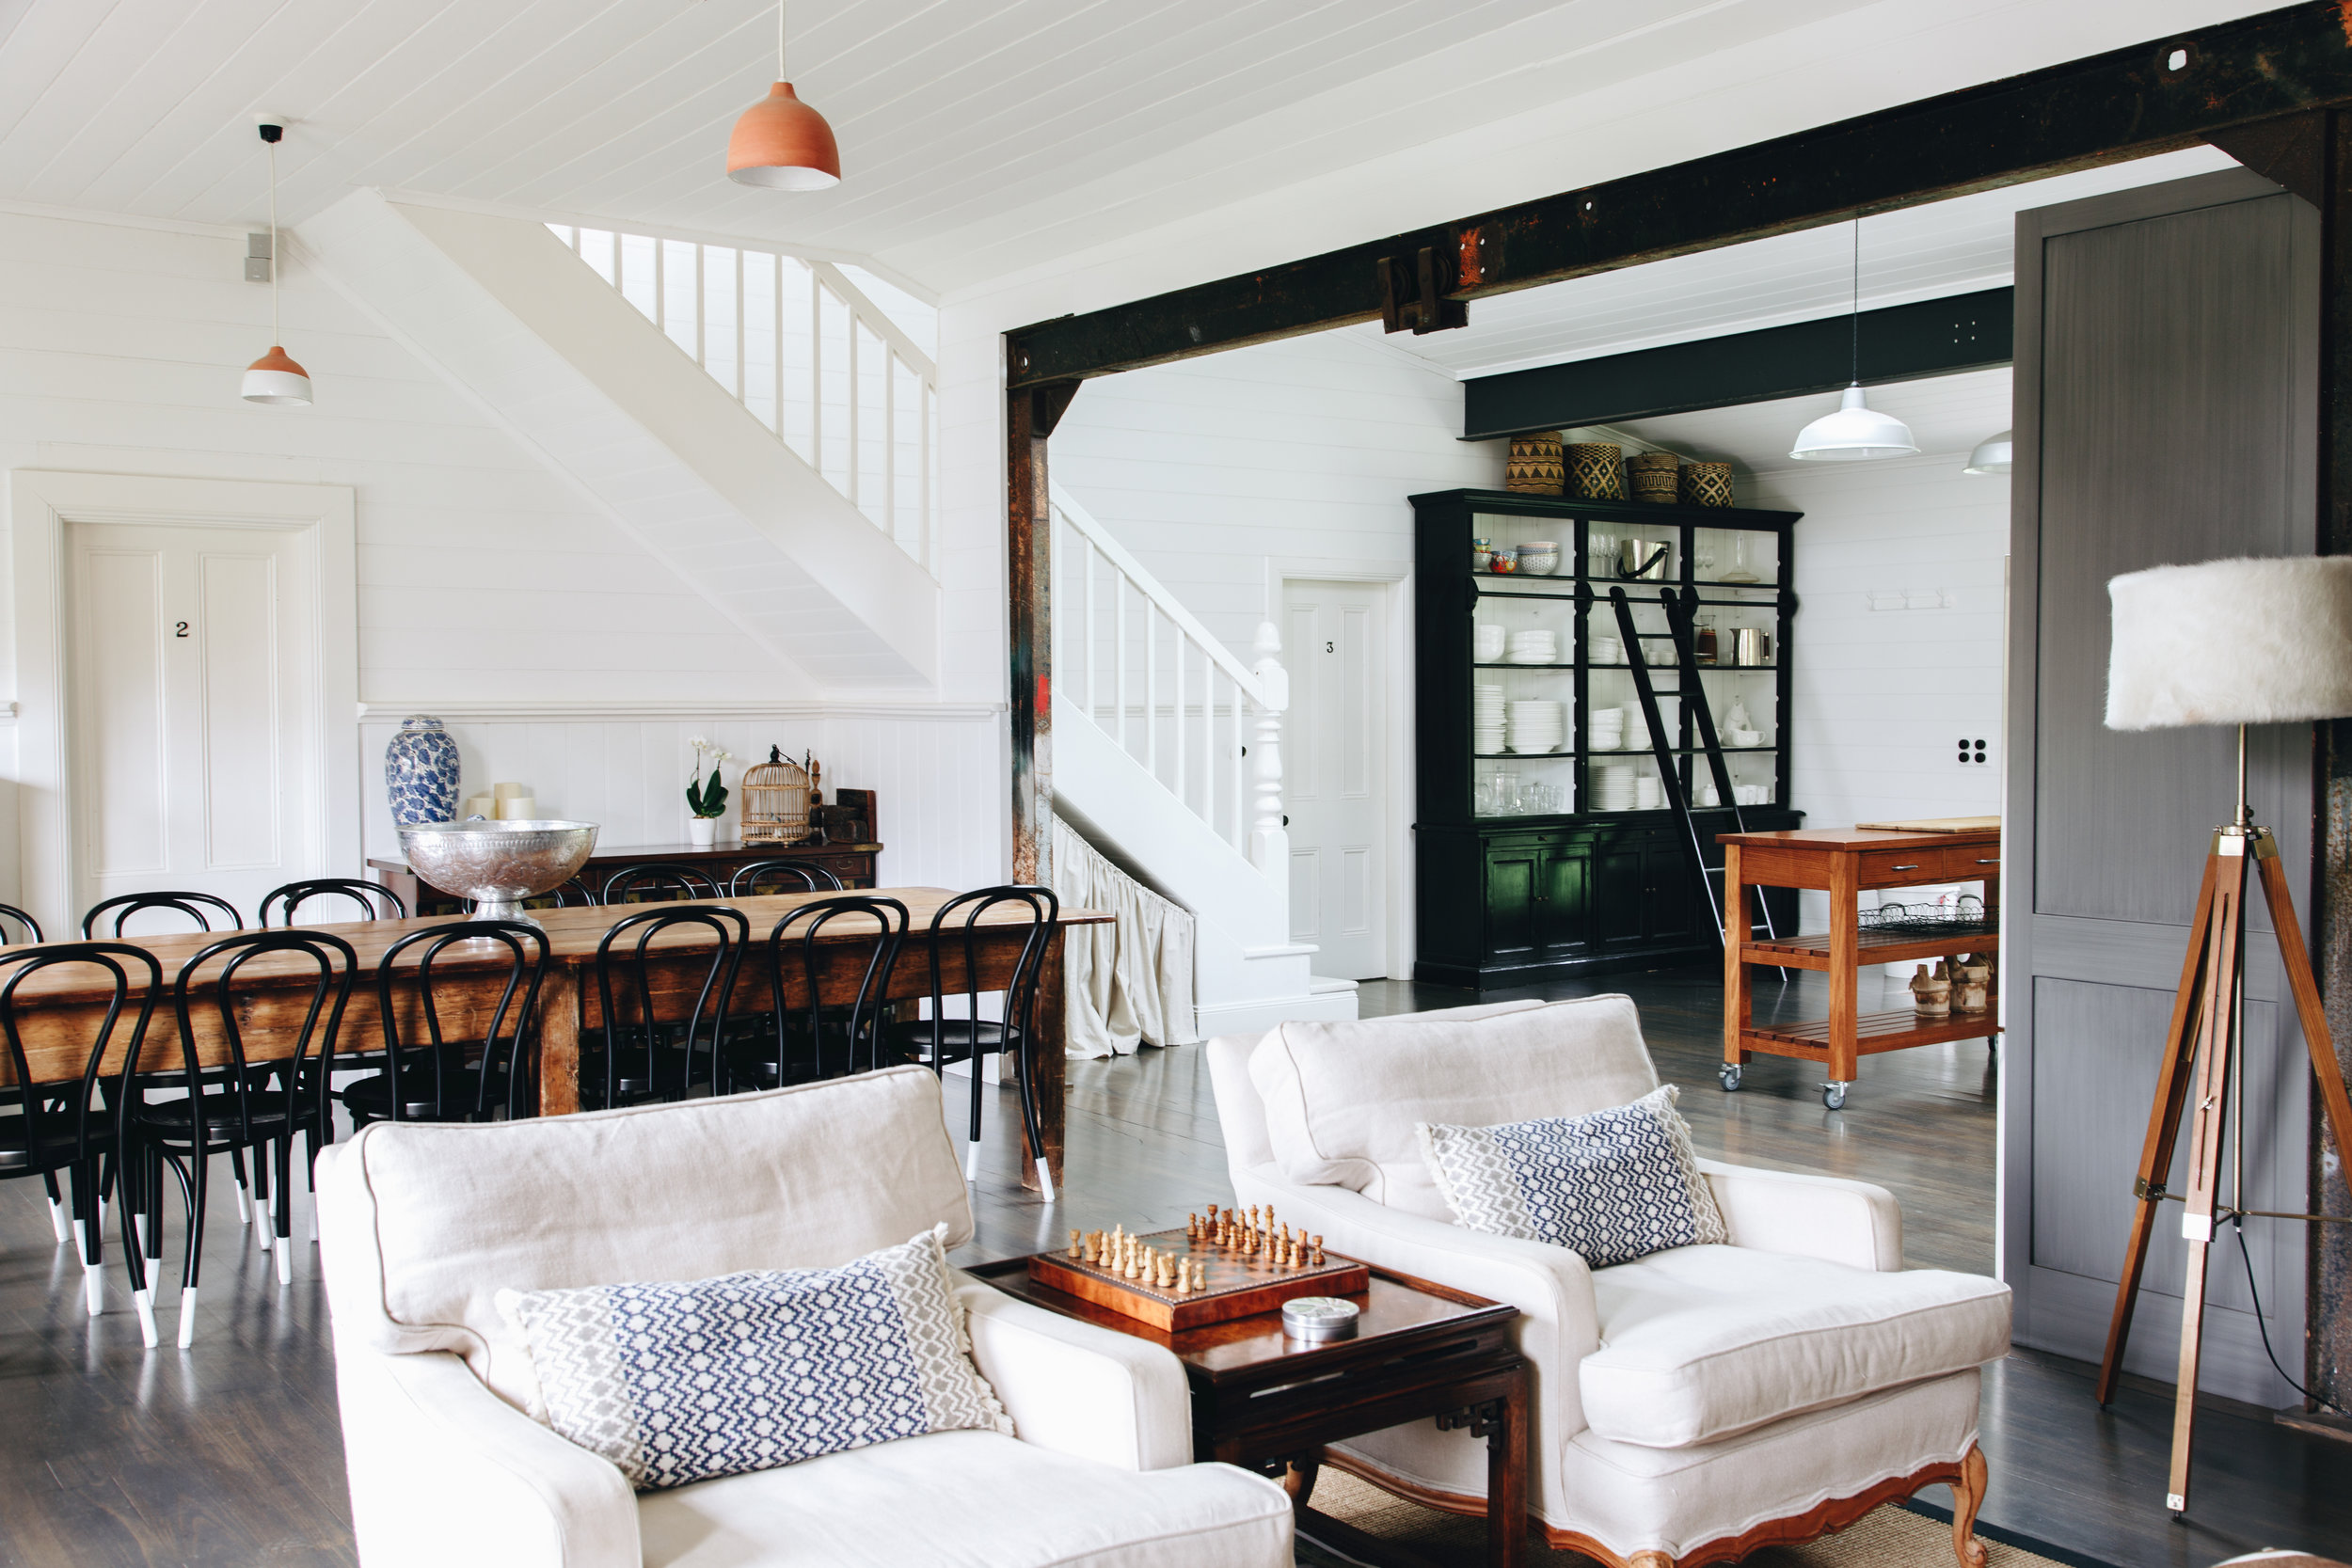 The Coach House | Bowral Accommodation Holiday House Southern Highlands